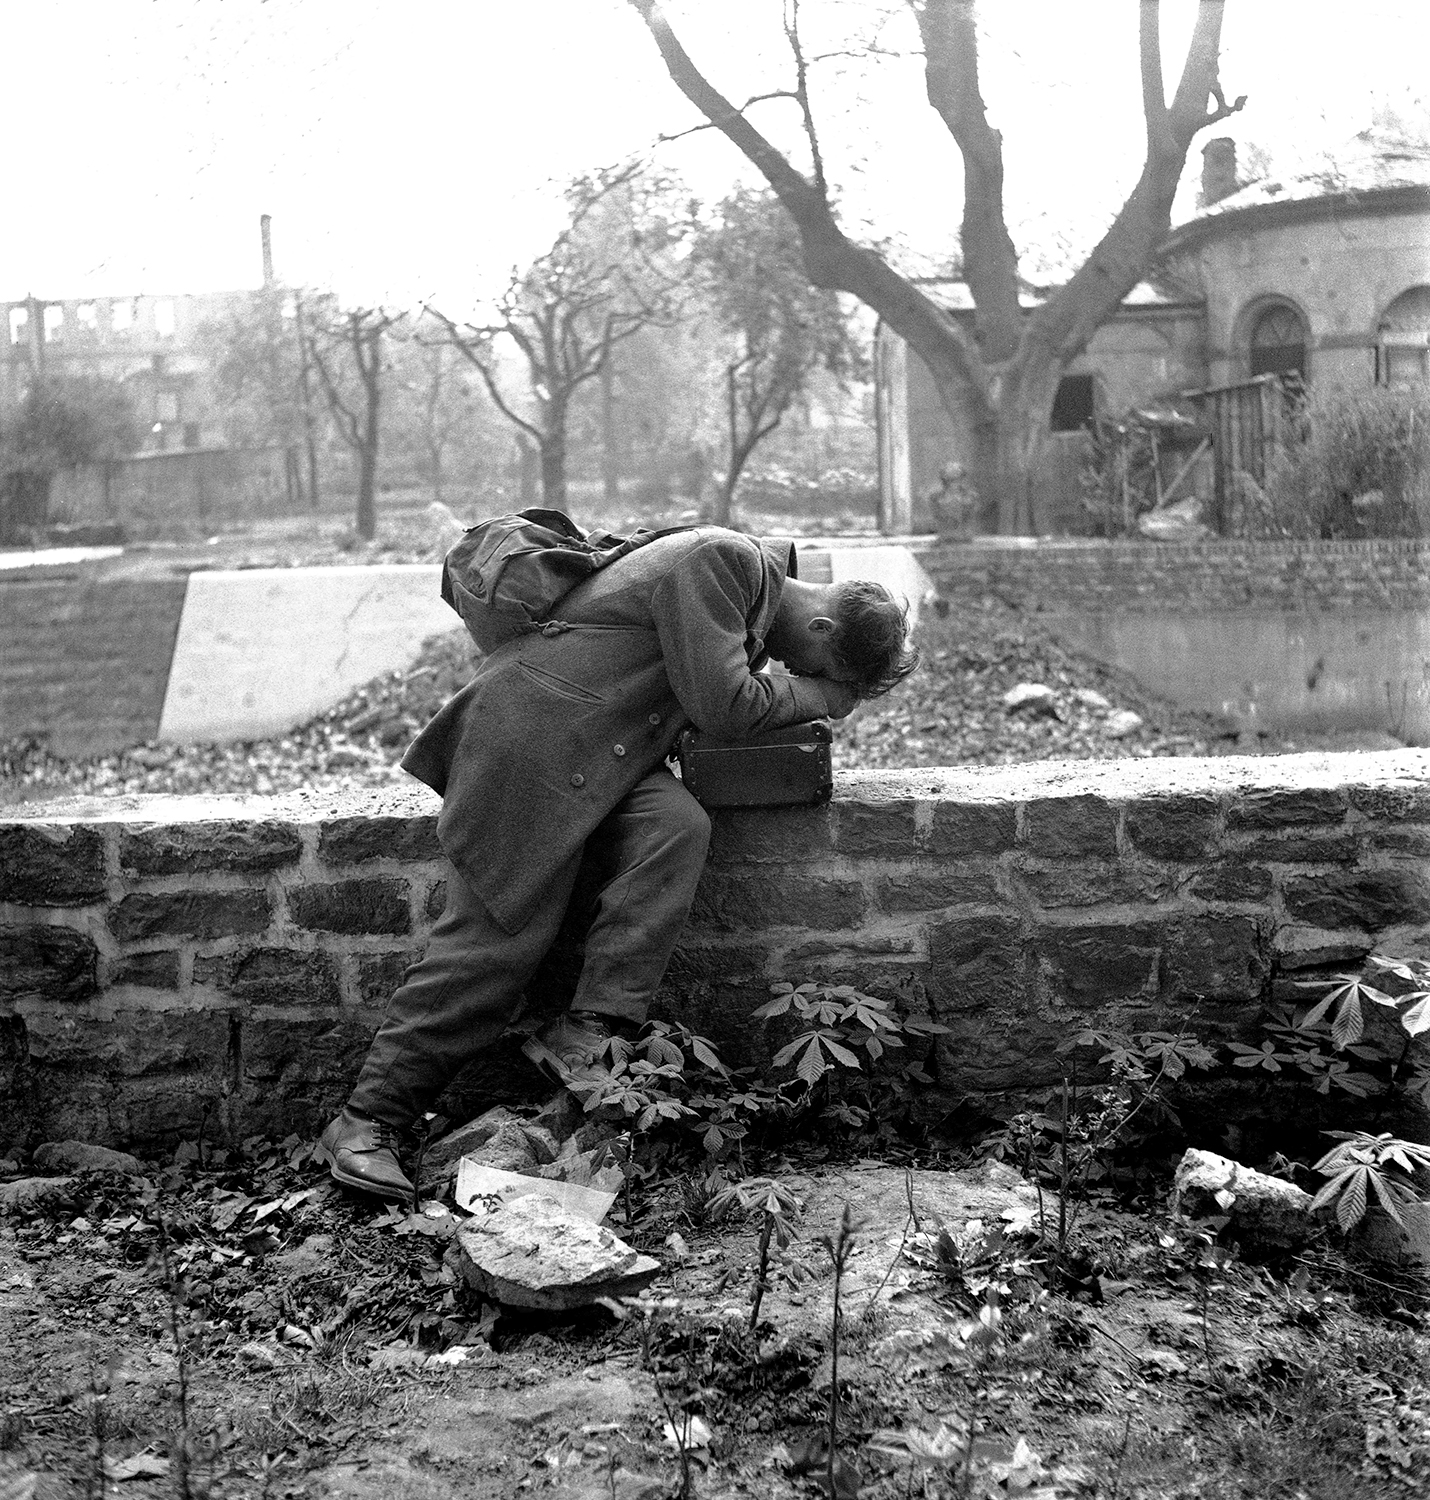 A German soldier, held prisoner in the United States of America, returns to his Frankfurt home only to find rubble. March 4, 1947, across the street from the American consulate